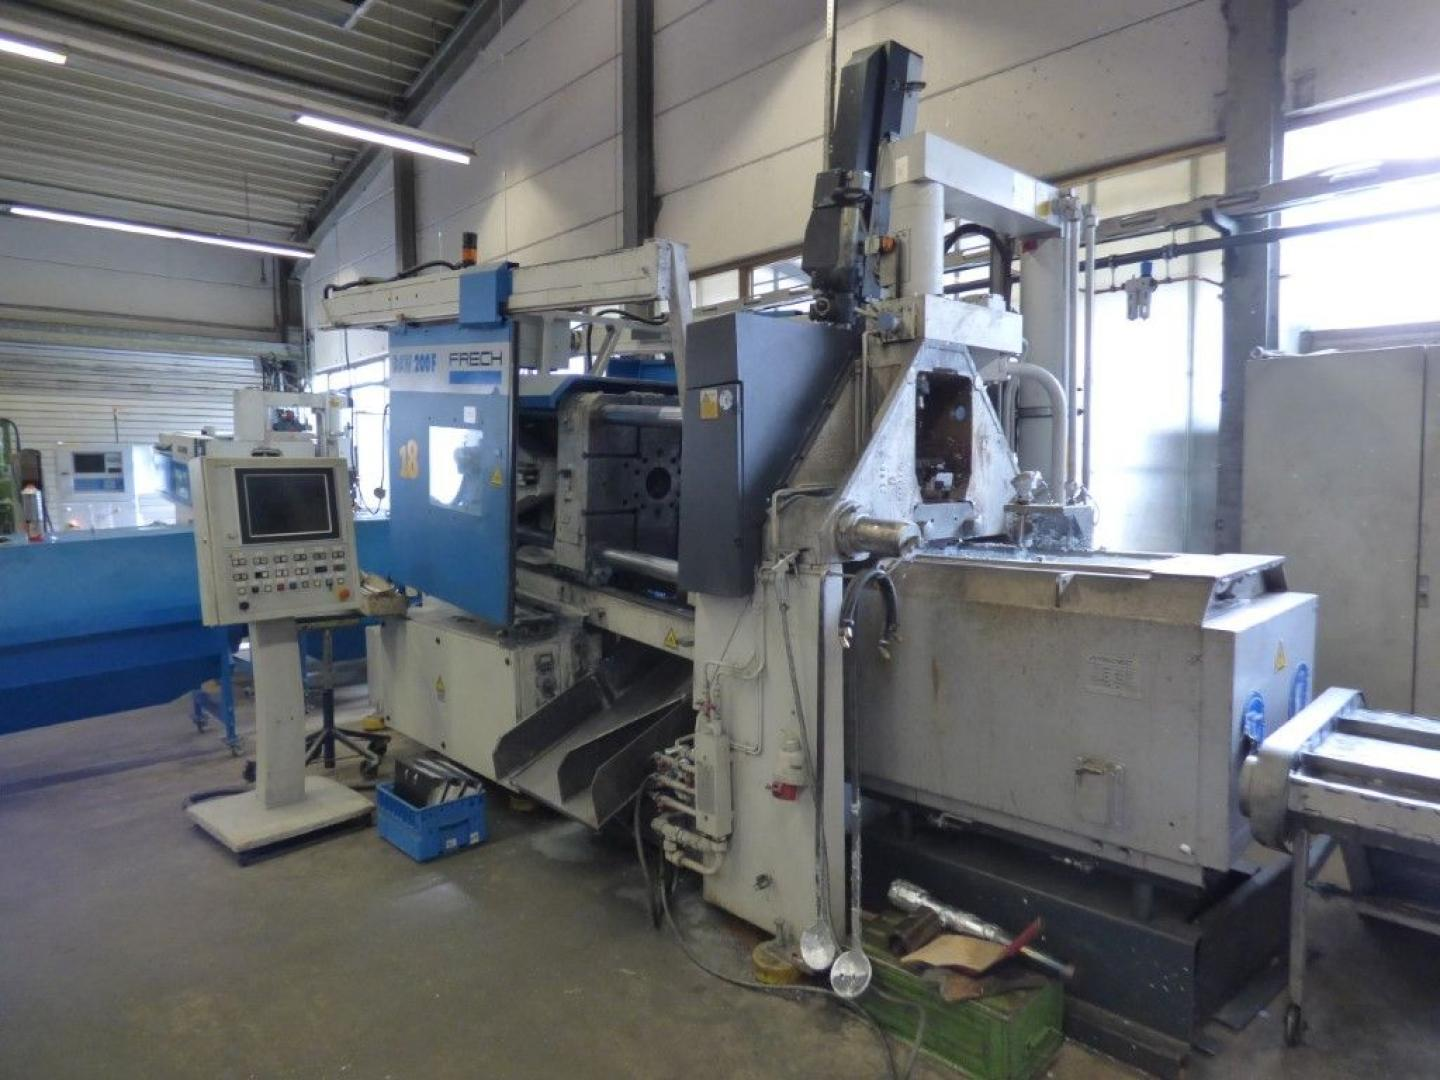 used  Hot-Chamber Diecasting Machine - Vertic. FRECH DAW 200 F